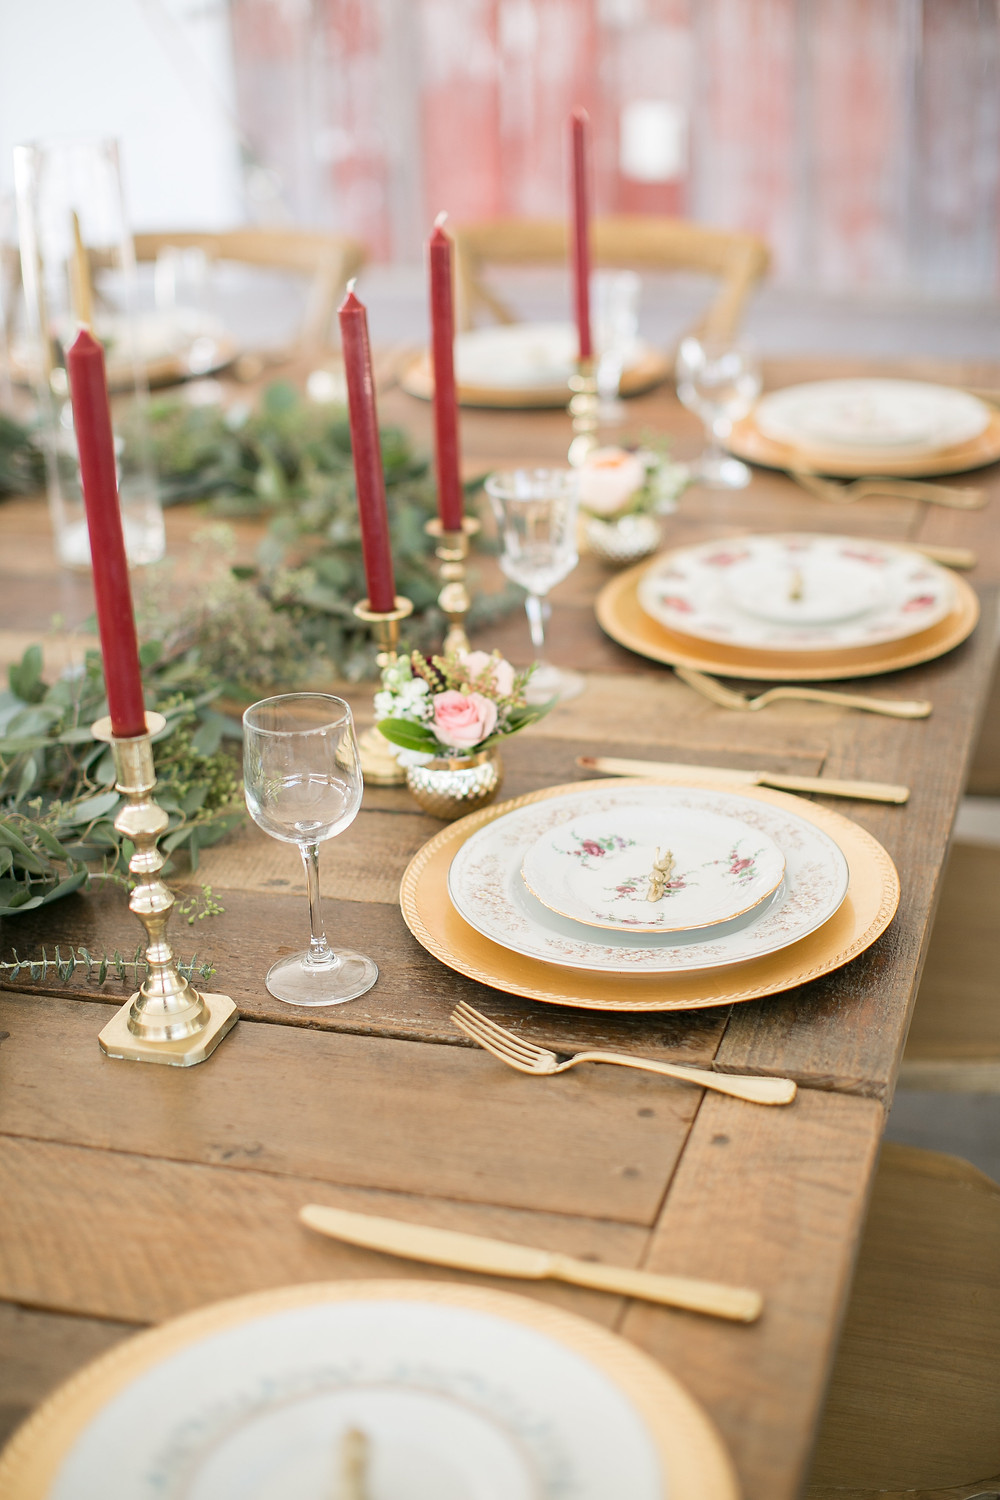 barnwood table with candles and vintage china set for wedding reception at sutliff cider